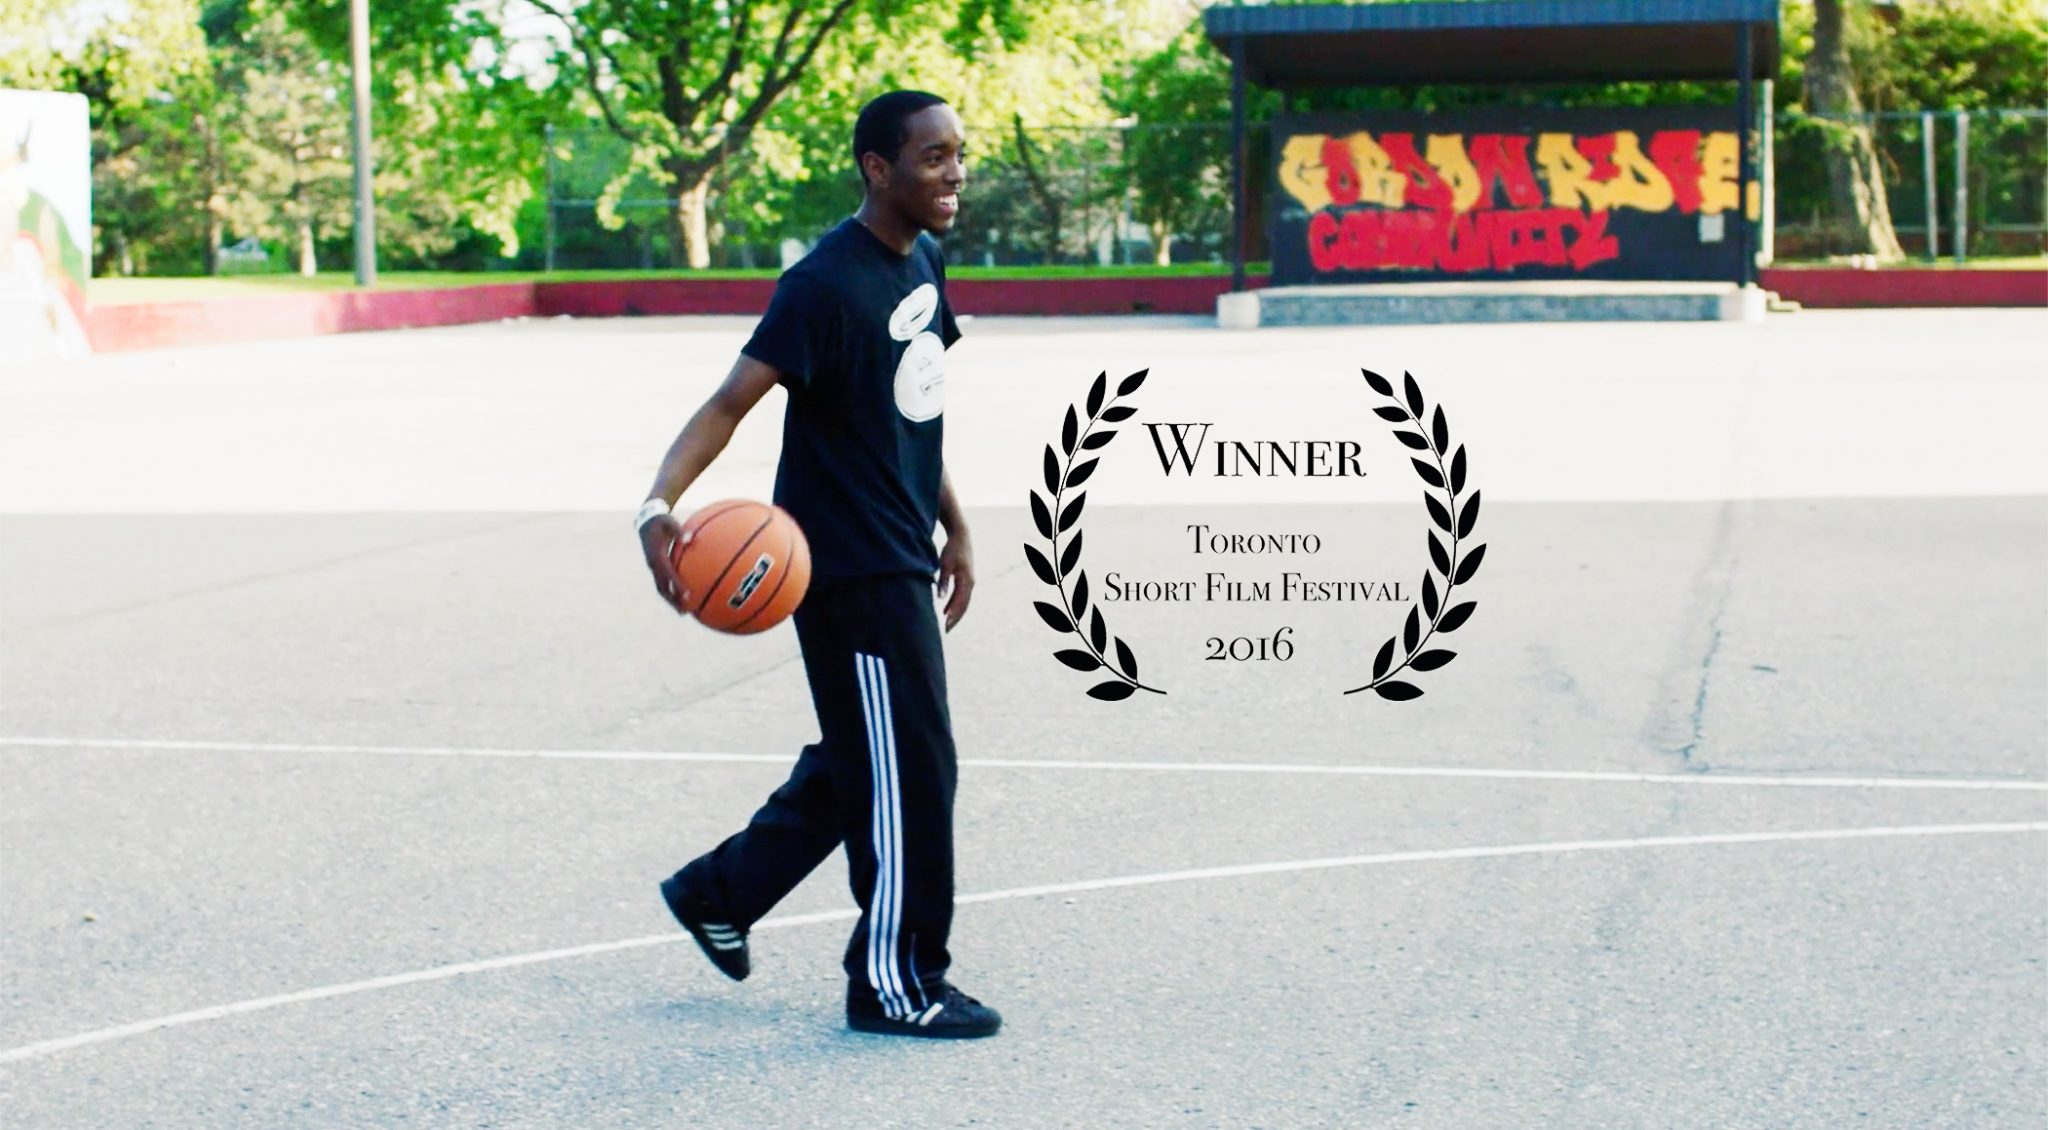 Eastern Commerce's Jason McDonald seen in his local basketball court in Scarborough's Gordonridge Place. Eastern won the award for best documentary at the 2016 Toronto Short Film Festival